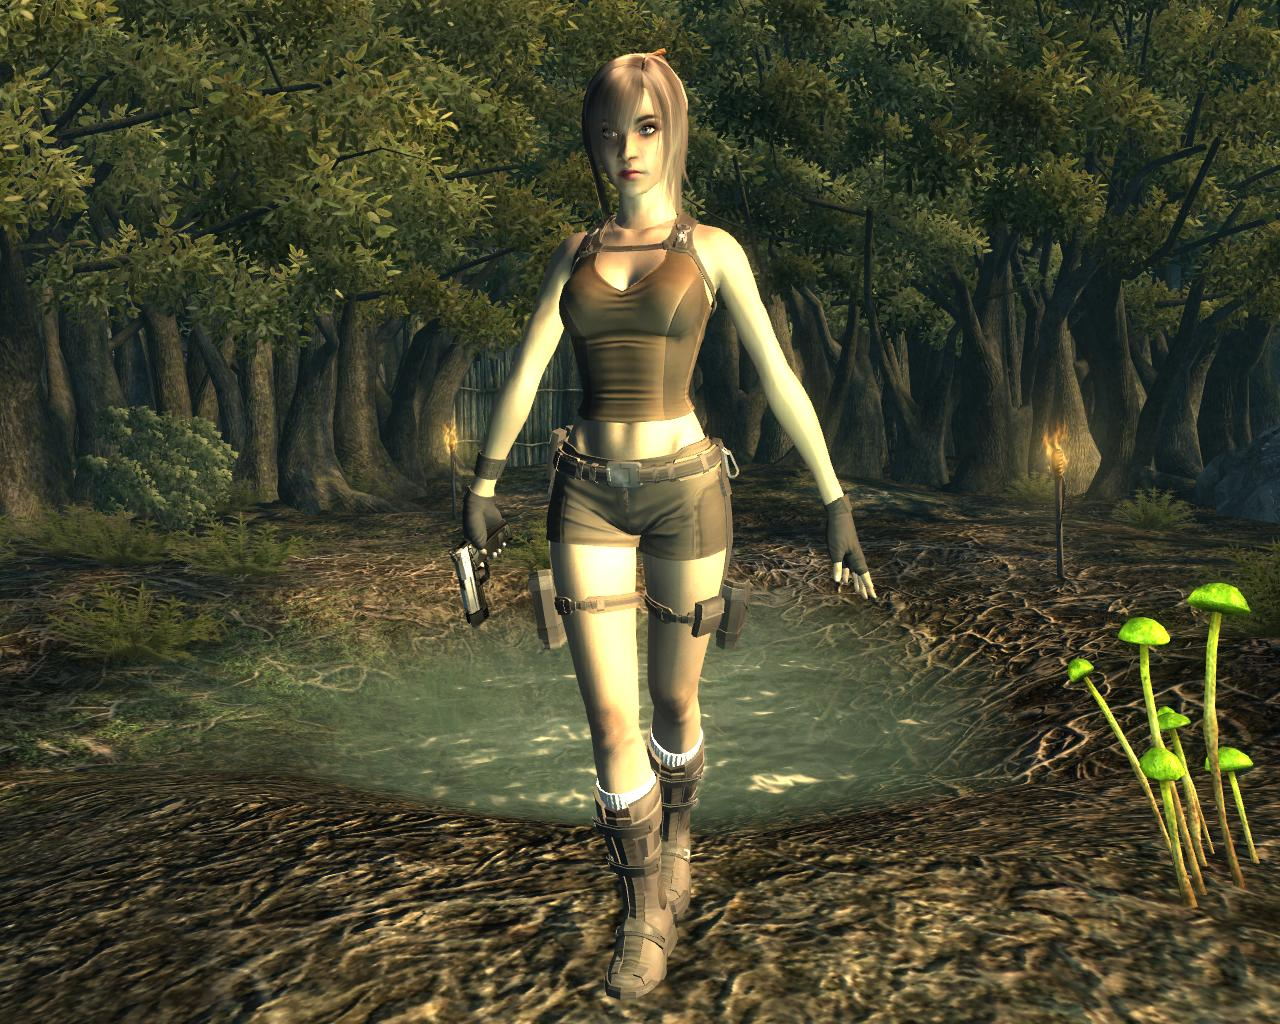 Fallout 3 naked babes mod pron video